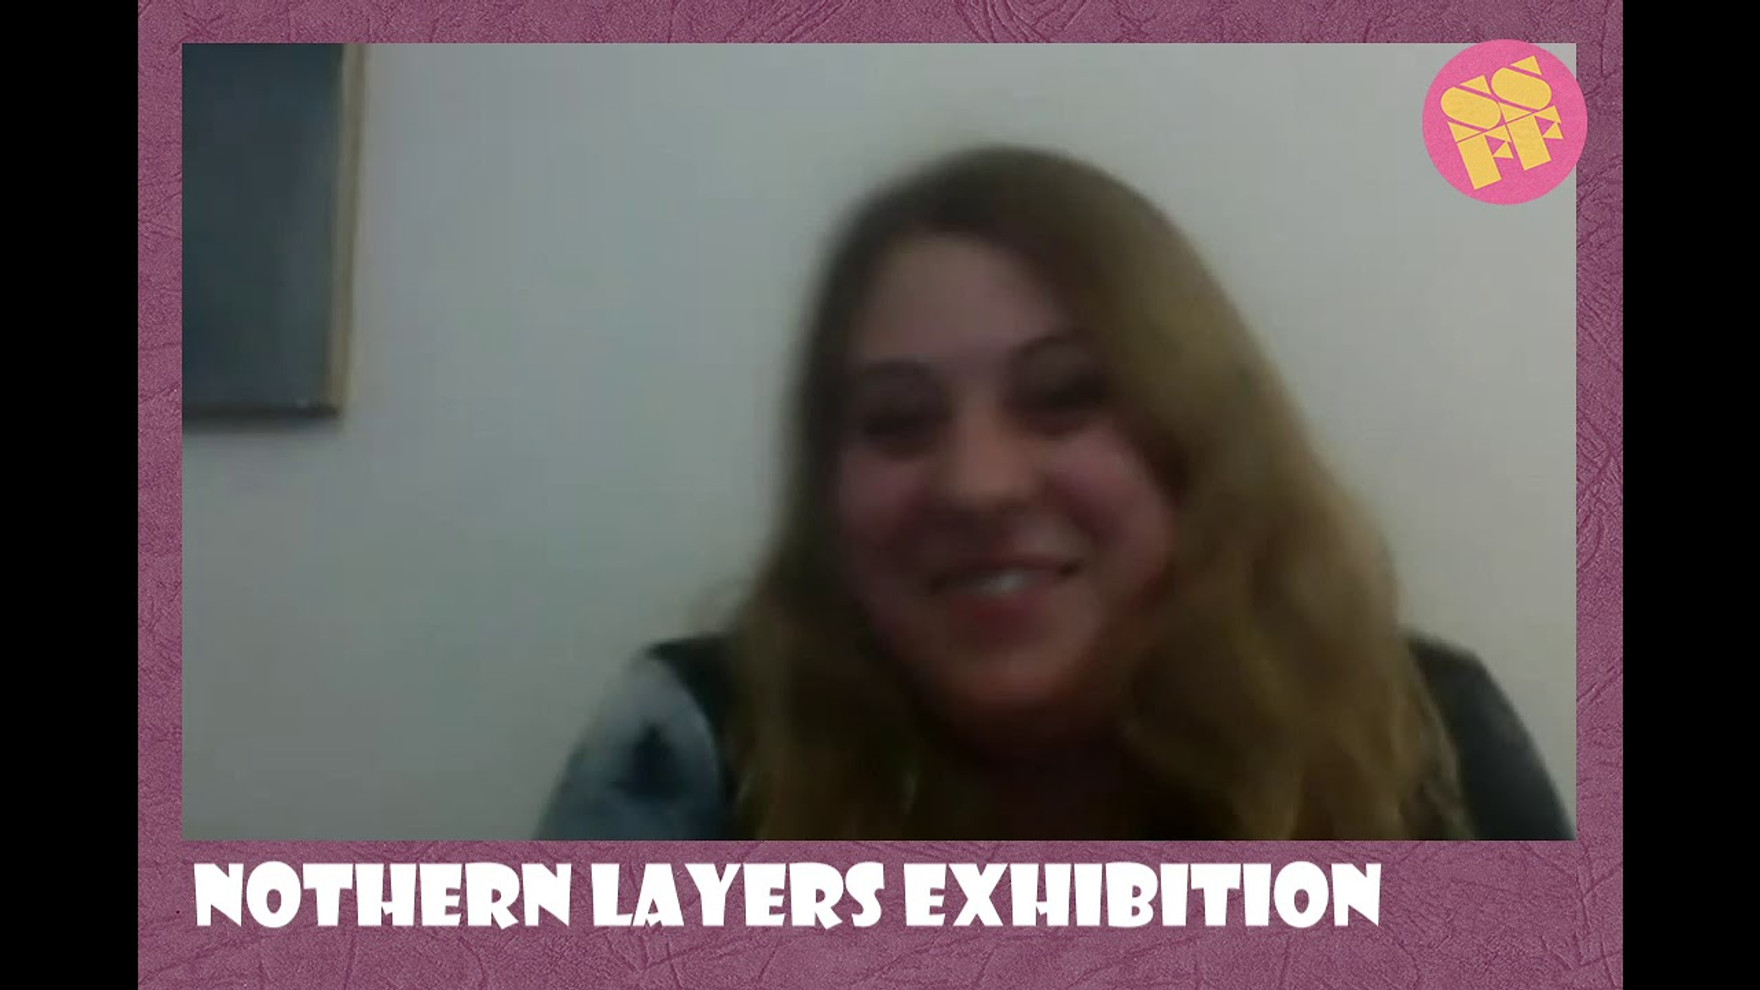 The Photojournalism Hub: Nothern Layers Exhibition